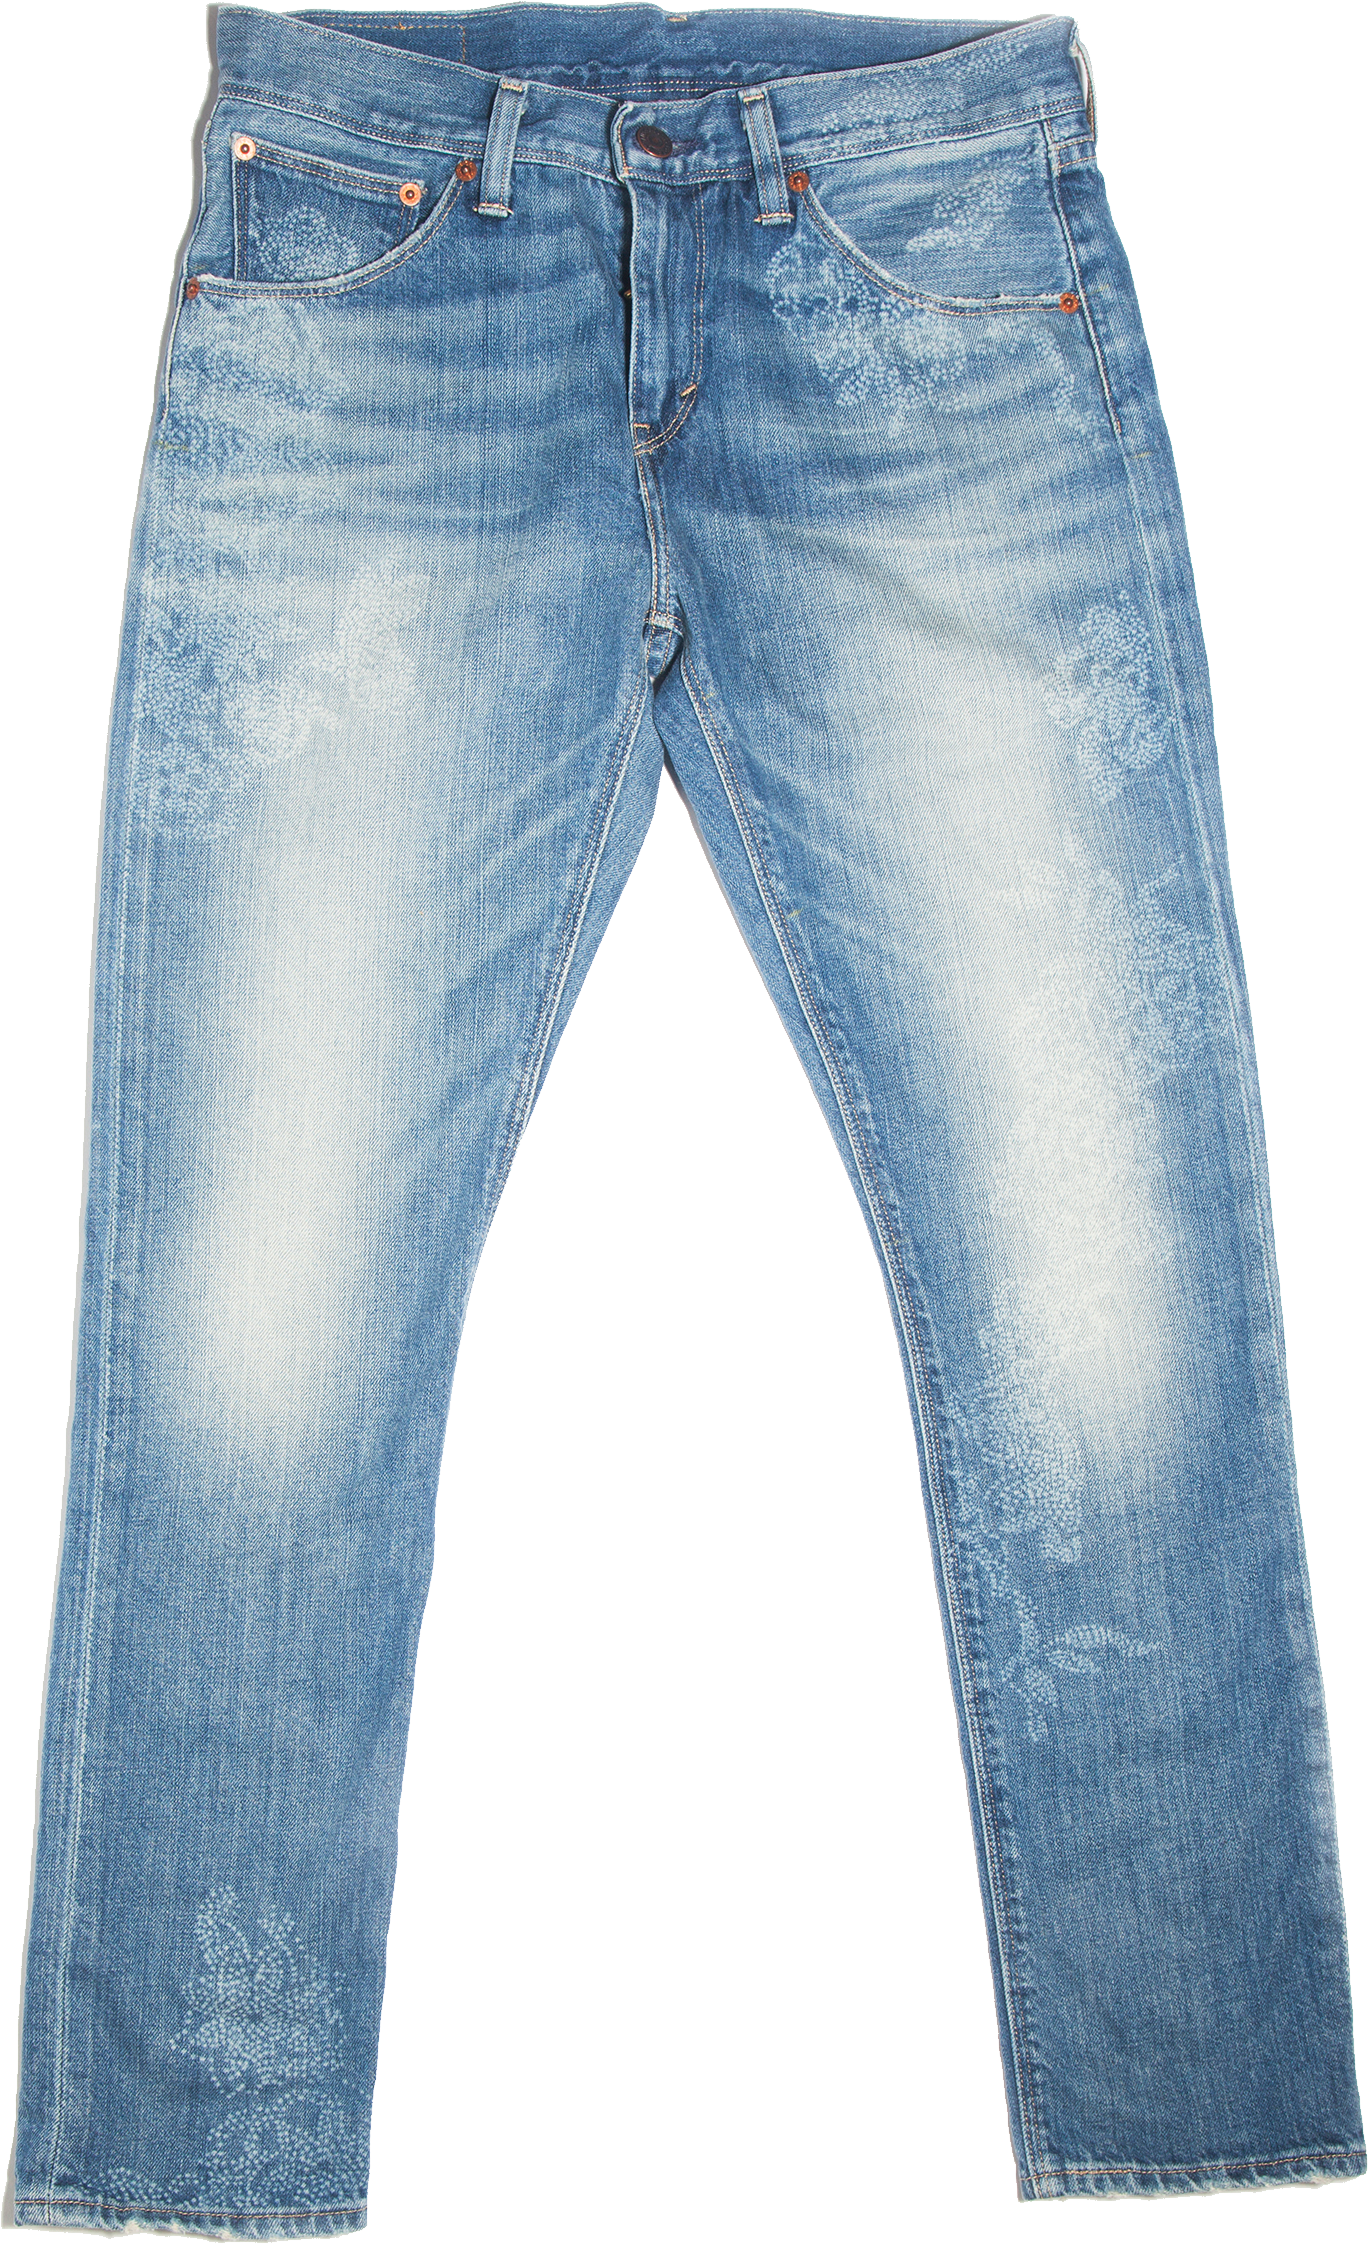 jeans clip art pictures free clipart panda free